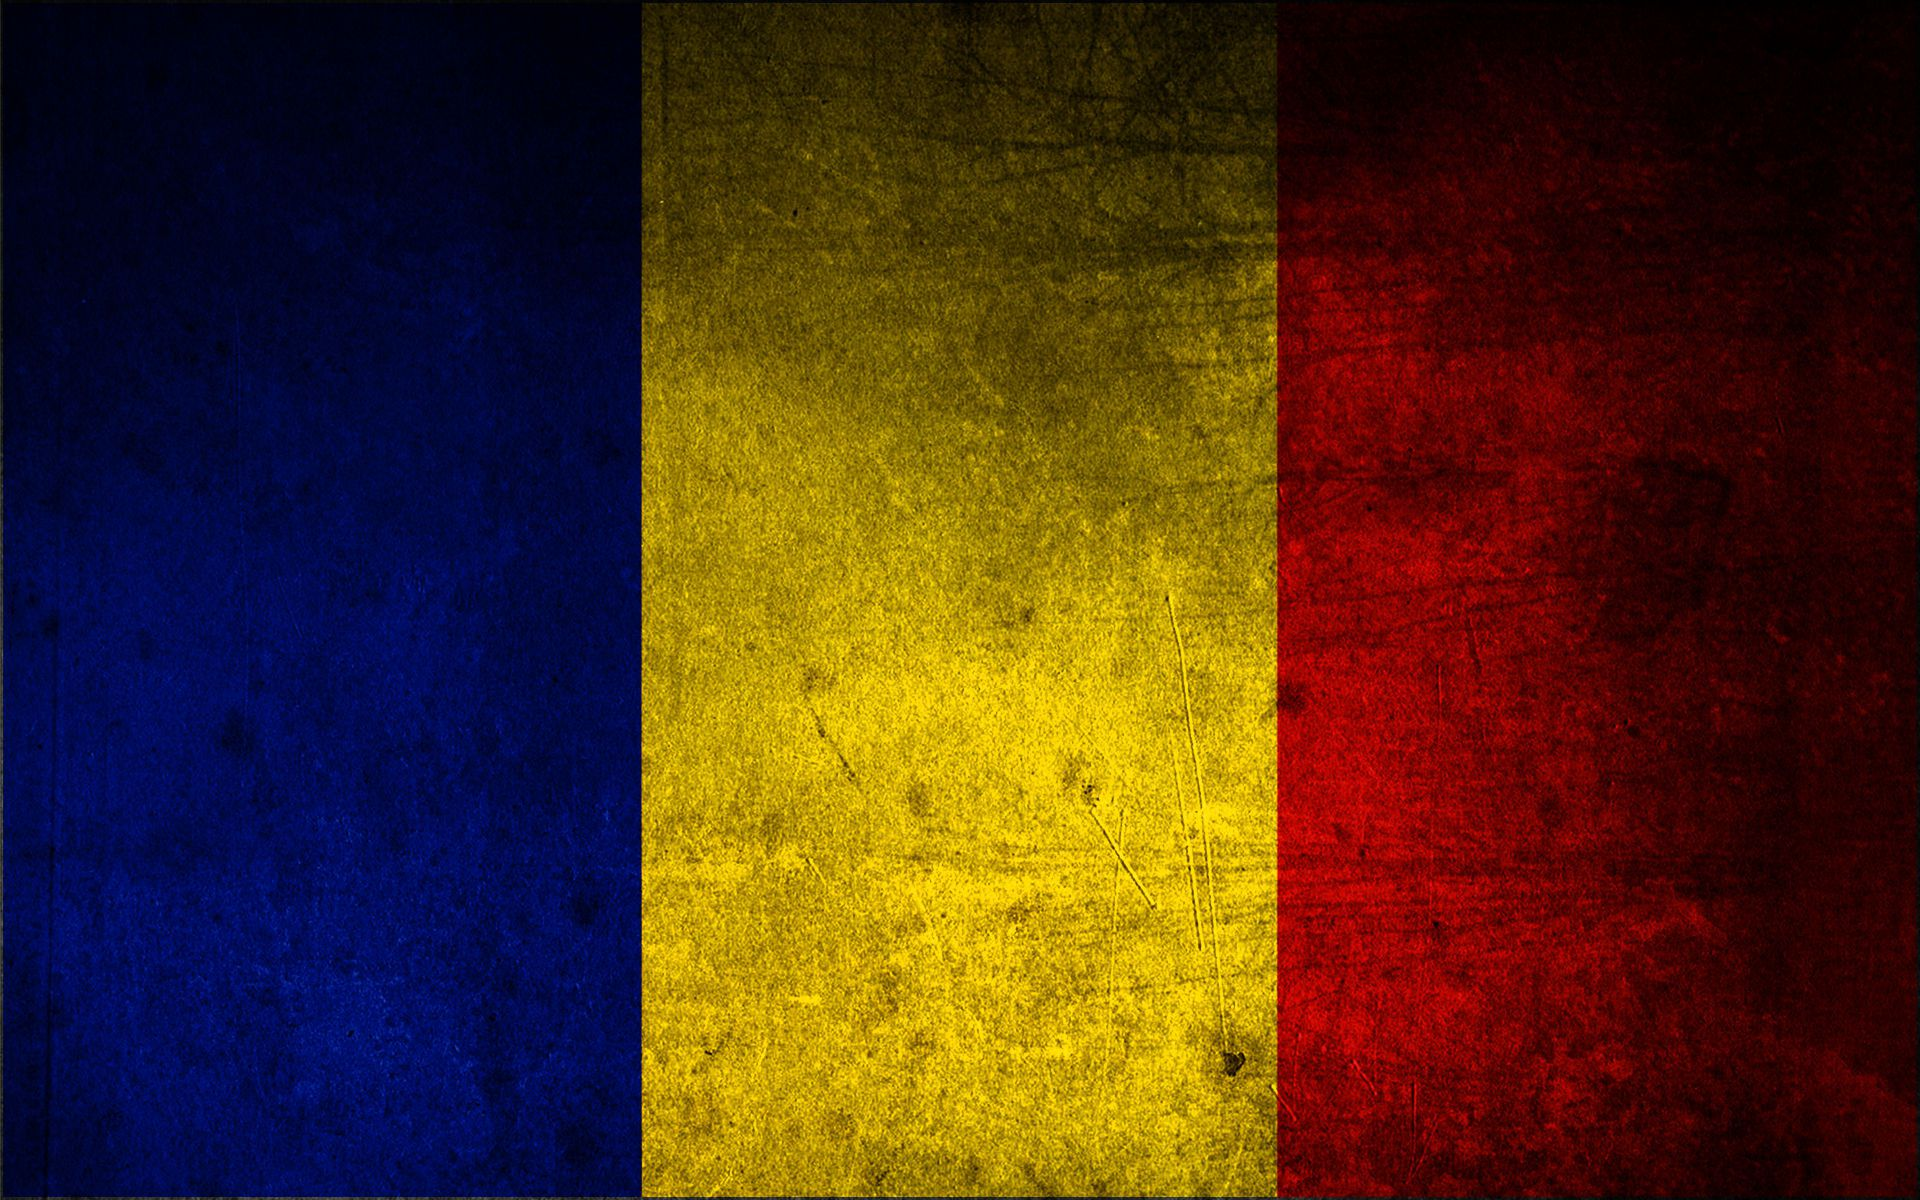 national-flag-of-romania-hd-wallpaper-download-romania-images-free